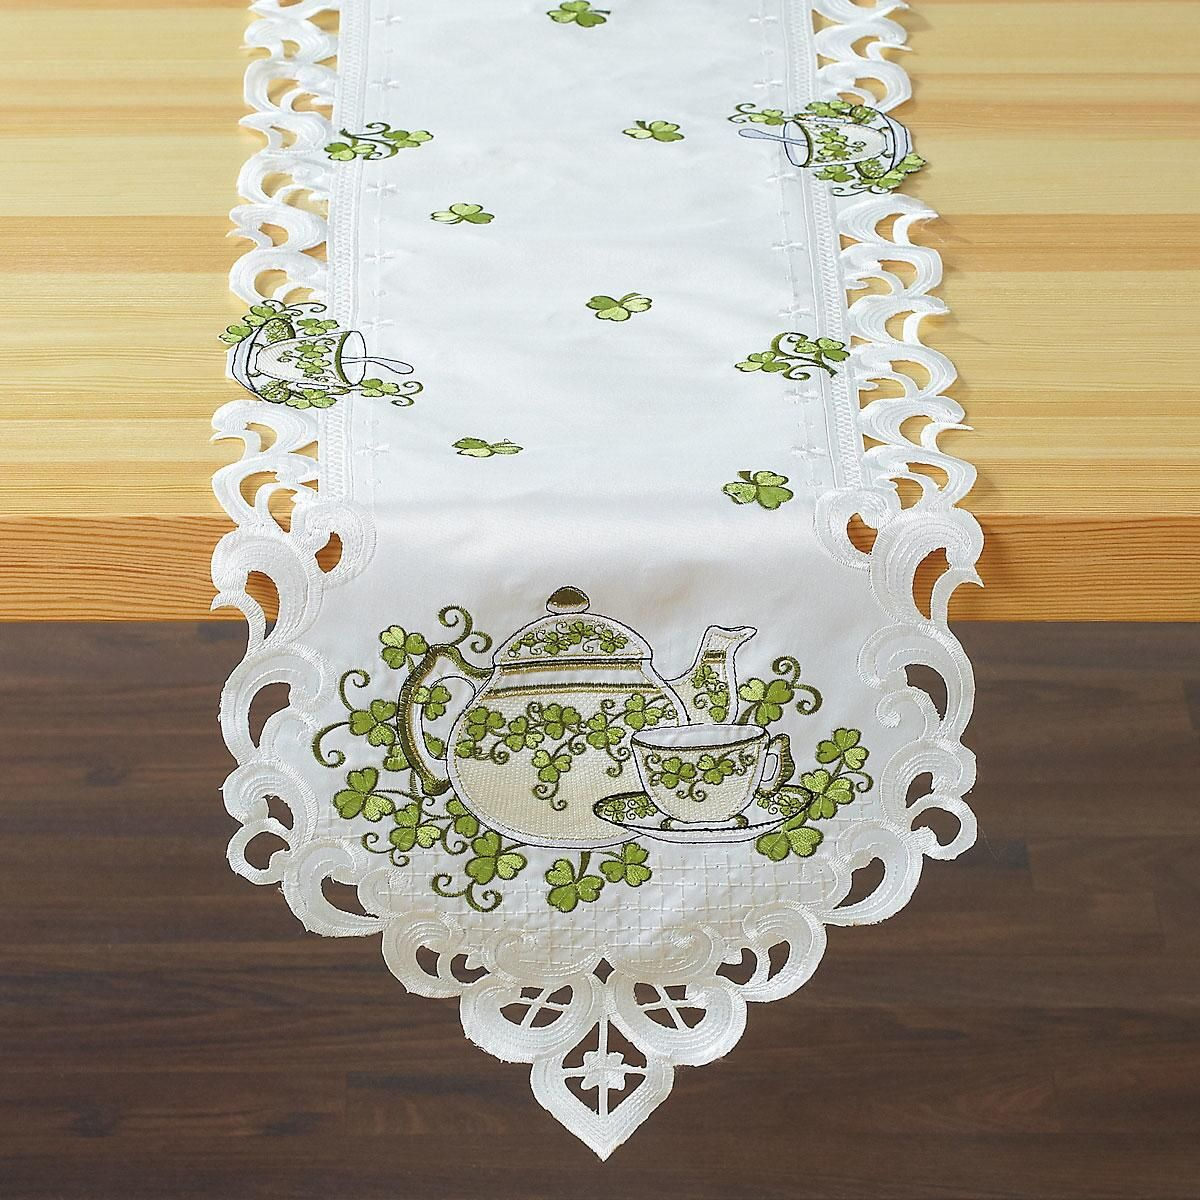 Teapots & Shamrocks Table Runner